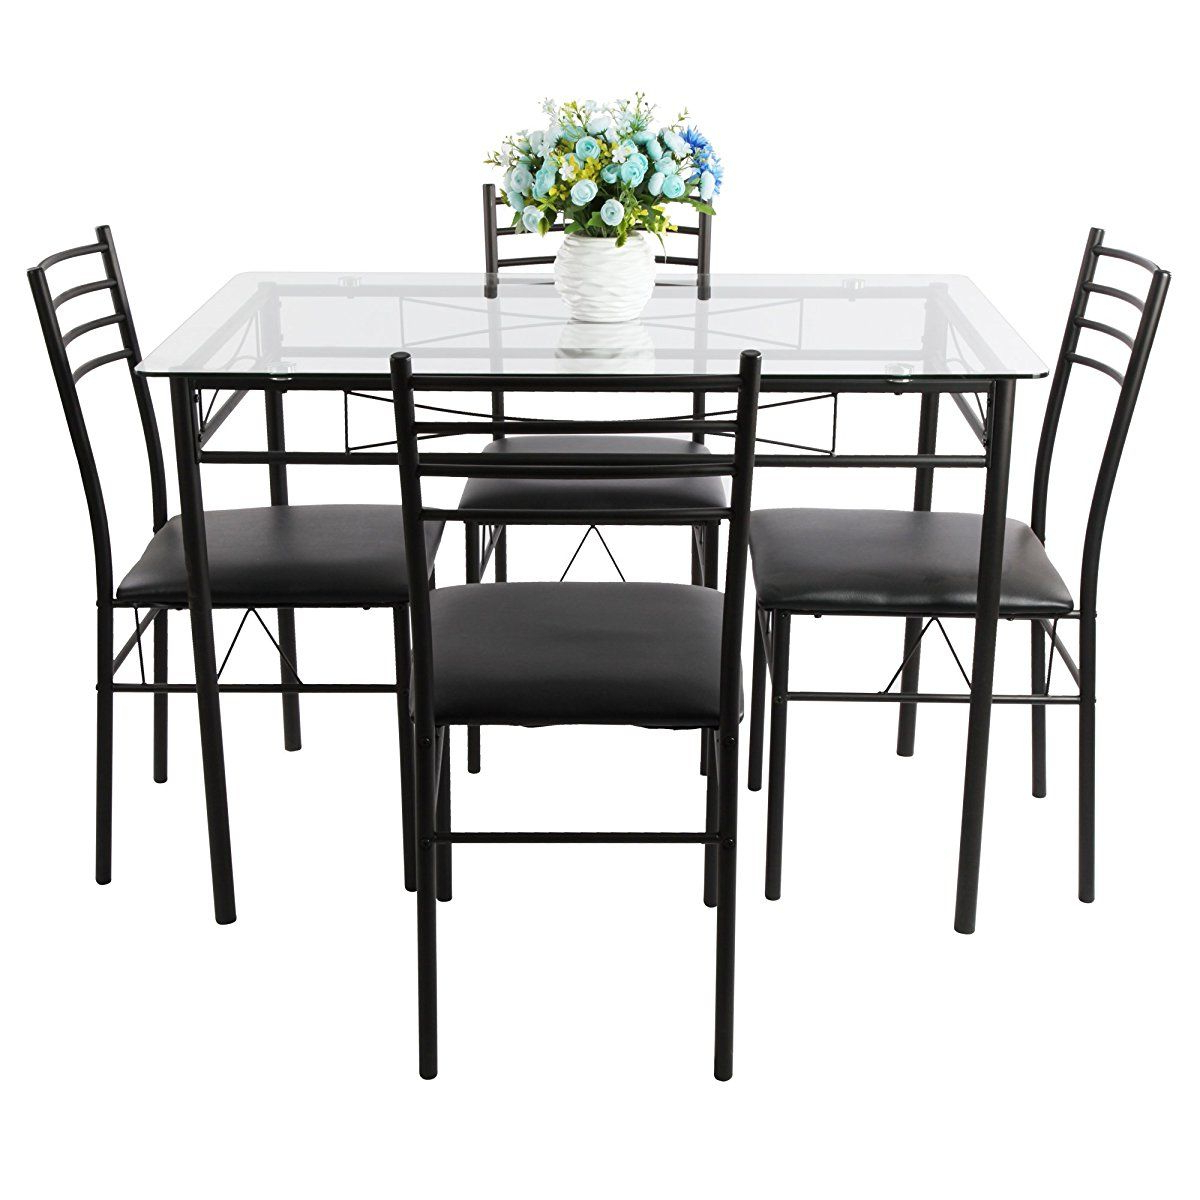 Liles 5 Piece Breakfast Nook Dining Sets For Well Known Vecelo Dining Table With 4 Chairs Black In (View 17 of 25)